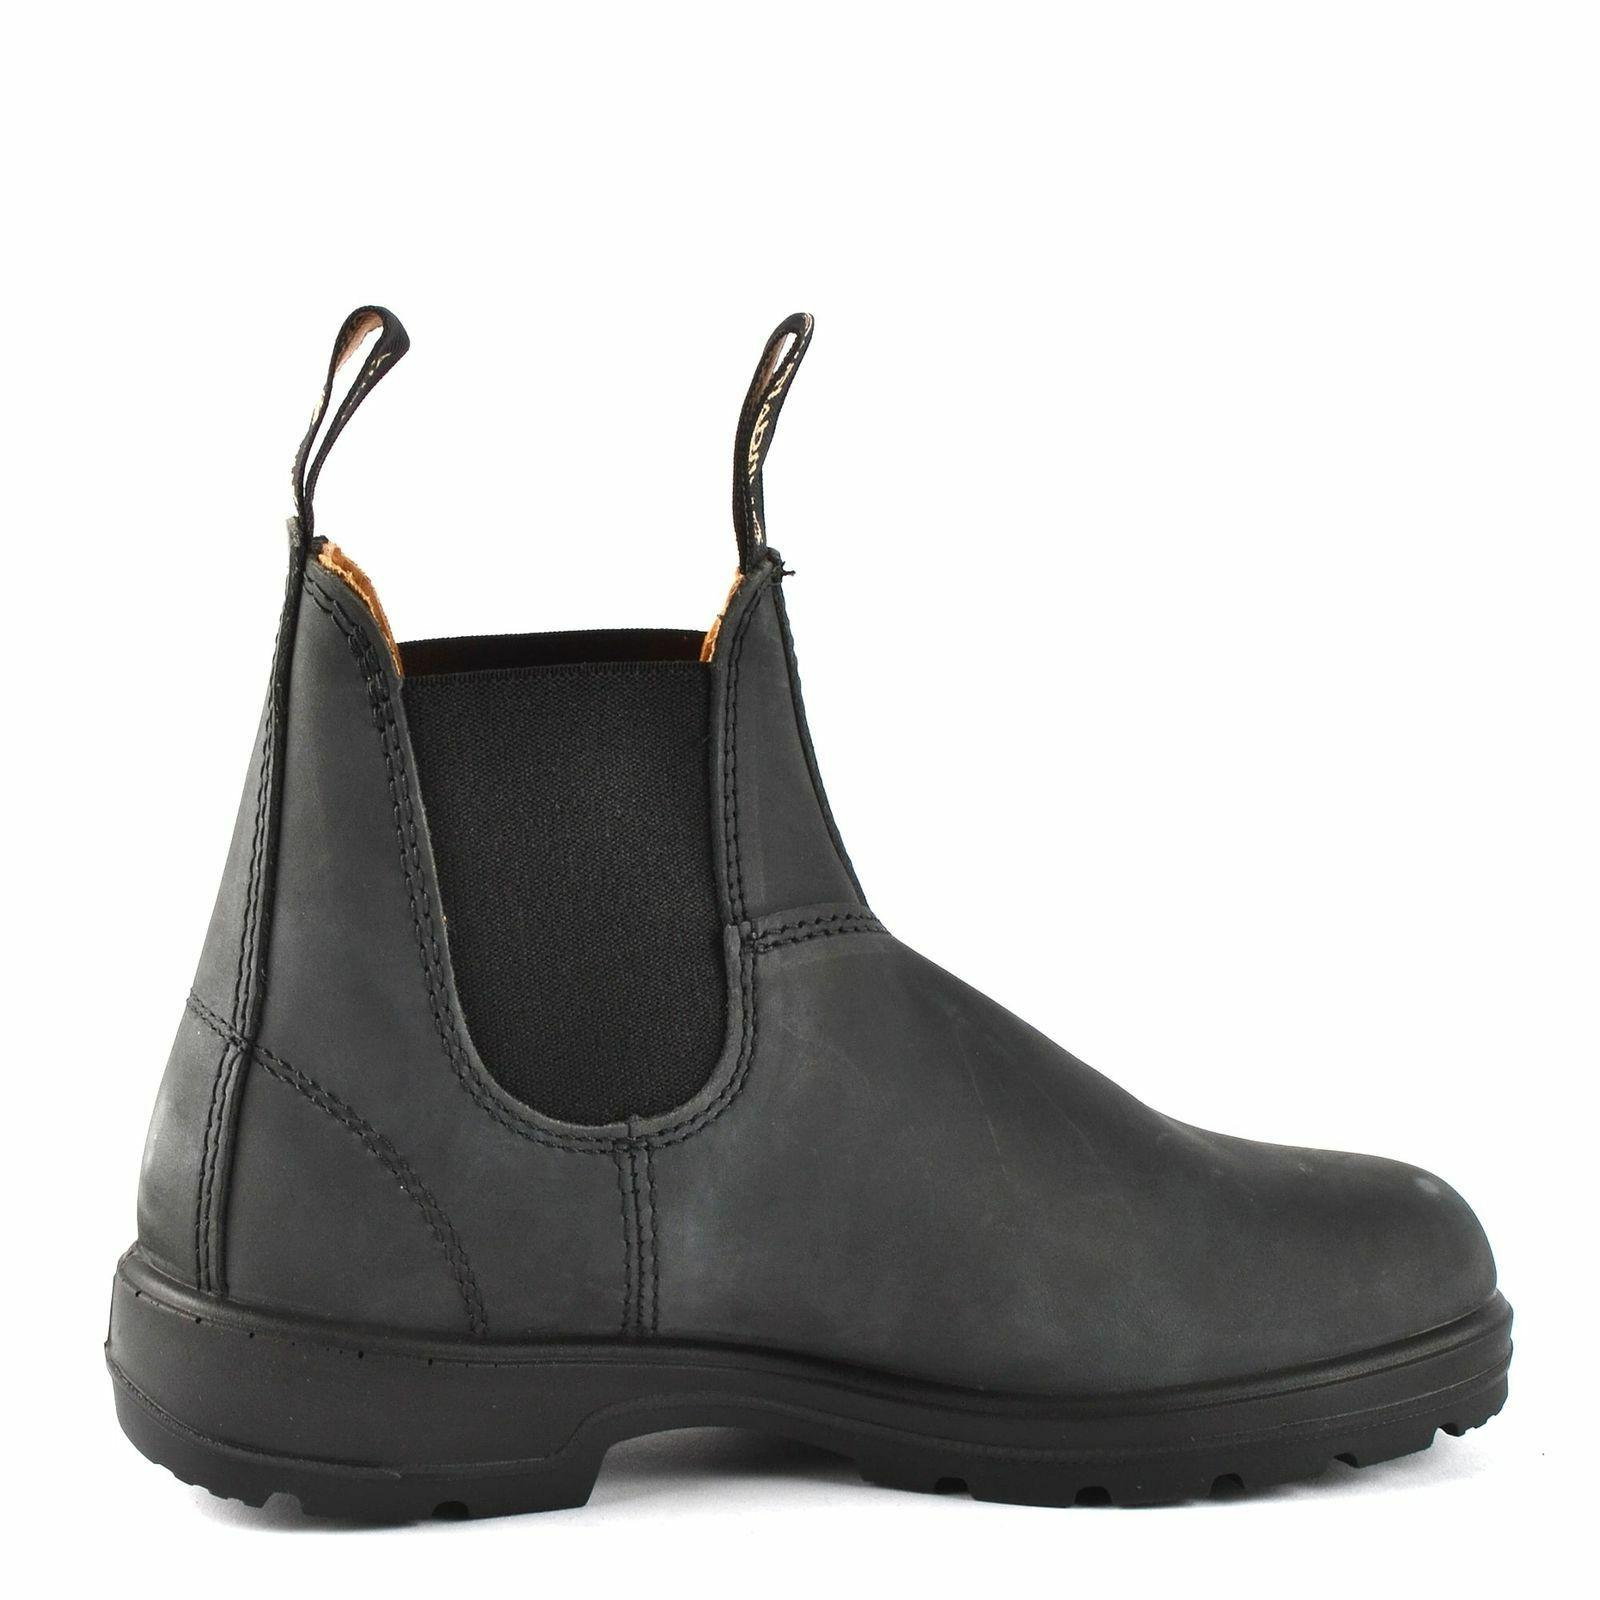 NEW Blundstone Rustic Boots for